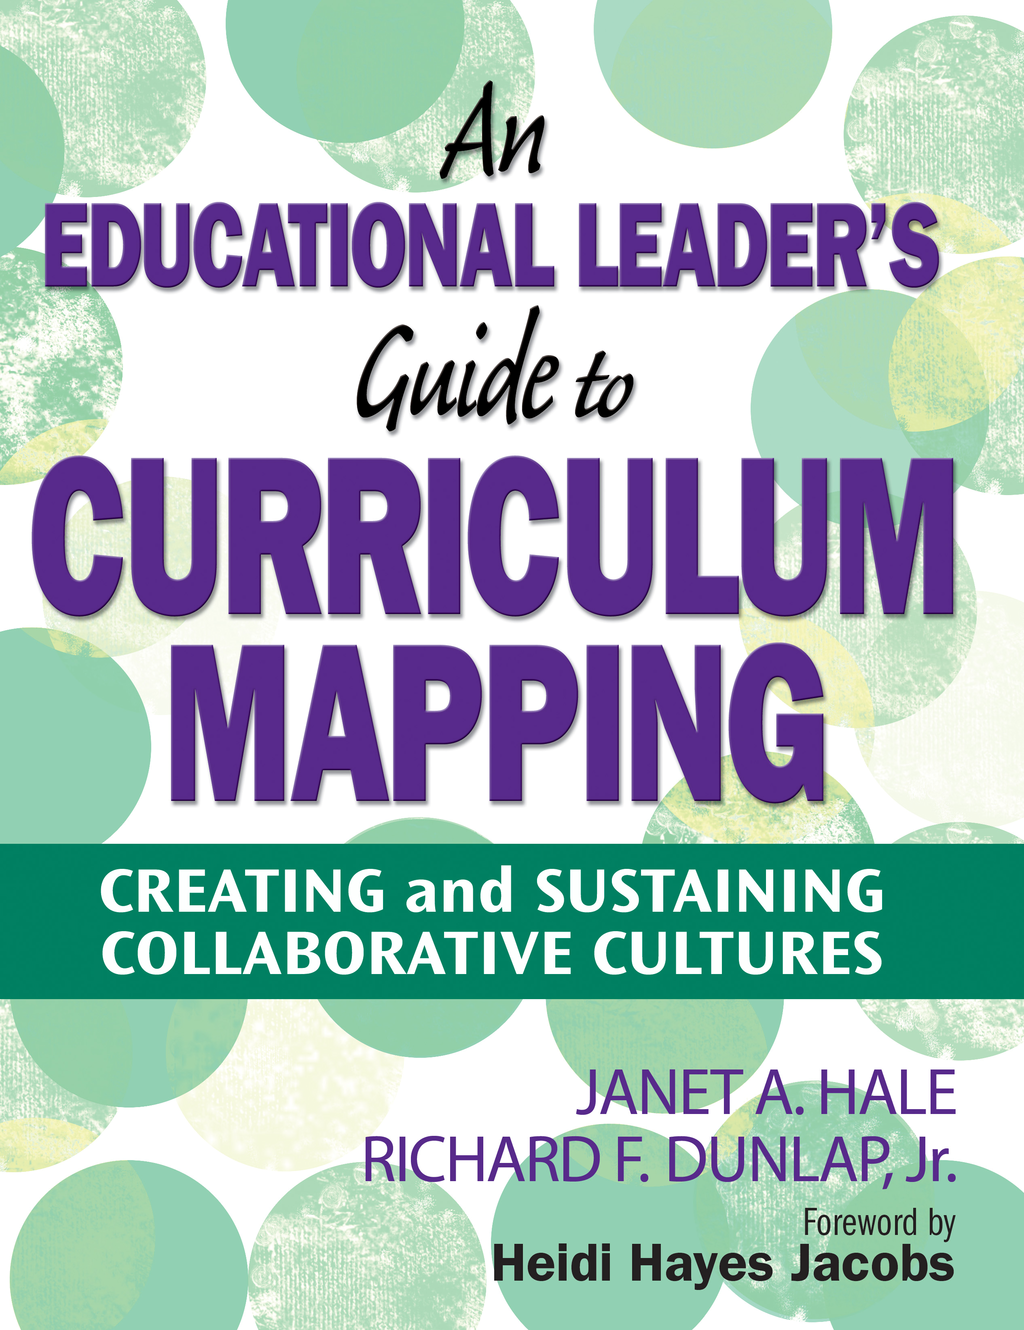 An Educational Leader's Guide to Curriculum Mapping Creating and Sustaining Collaborative Cultures